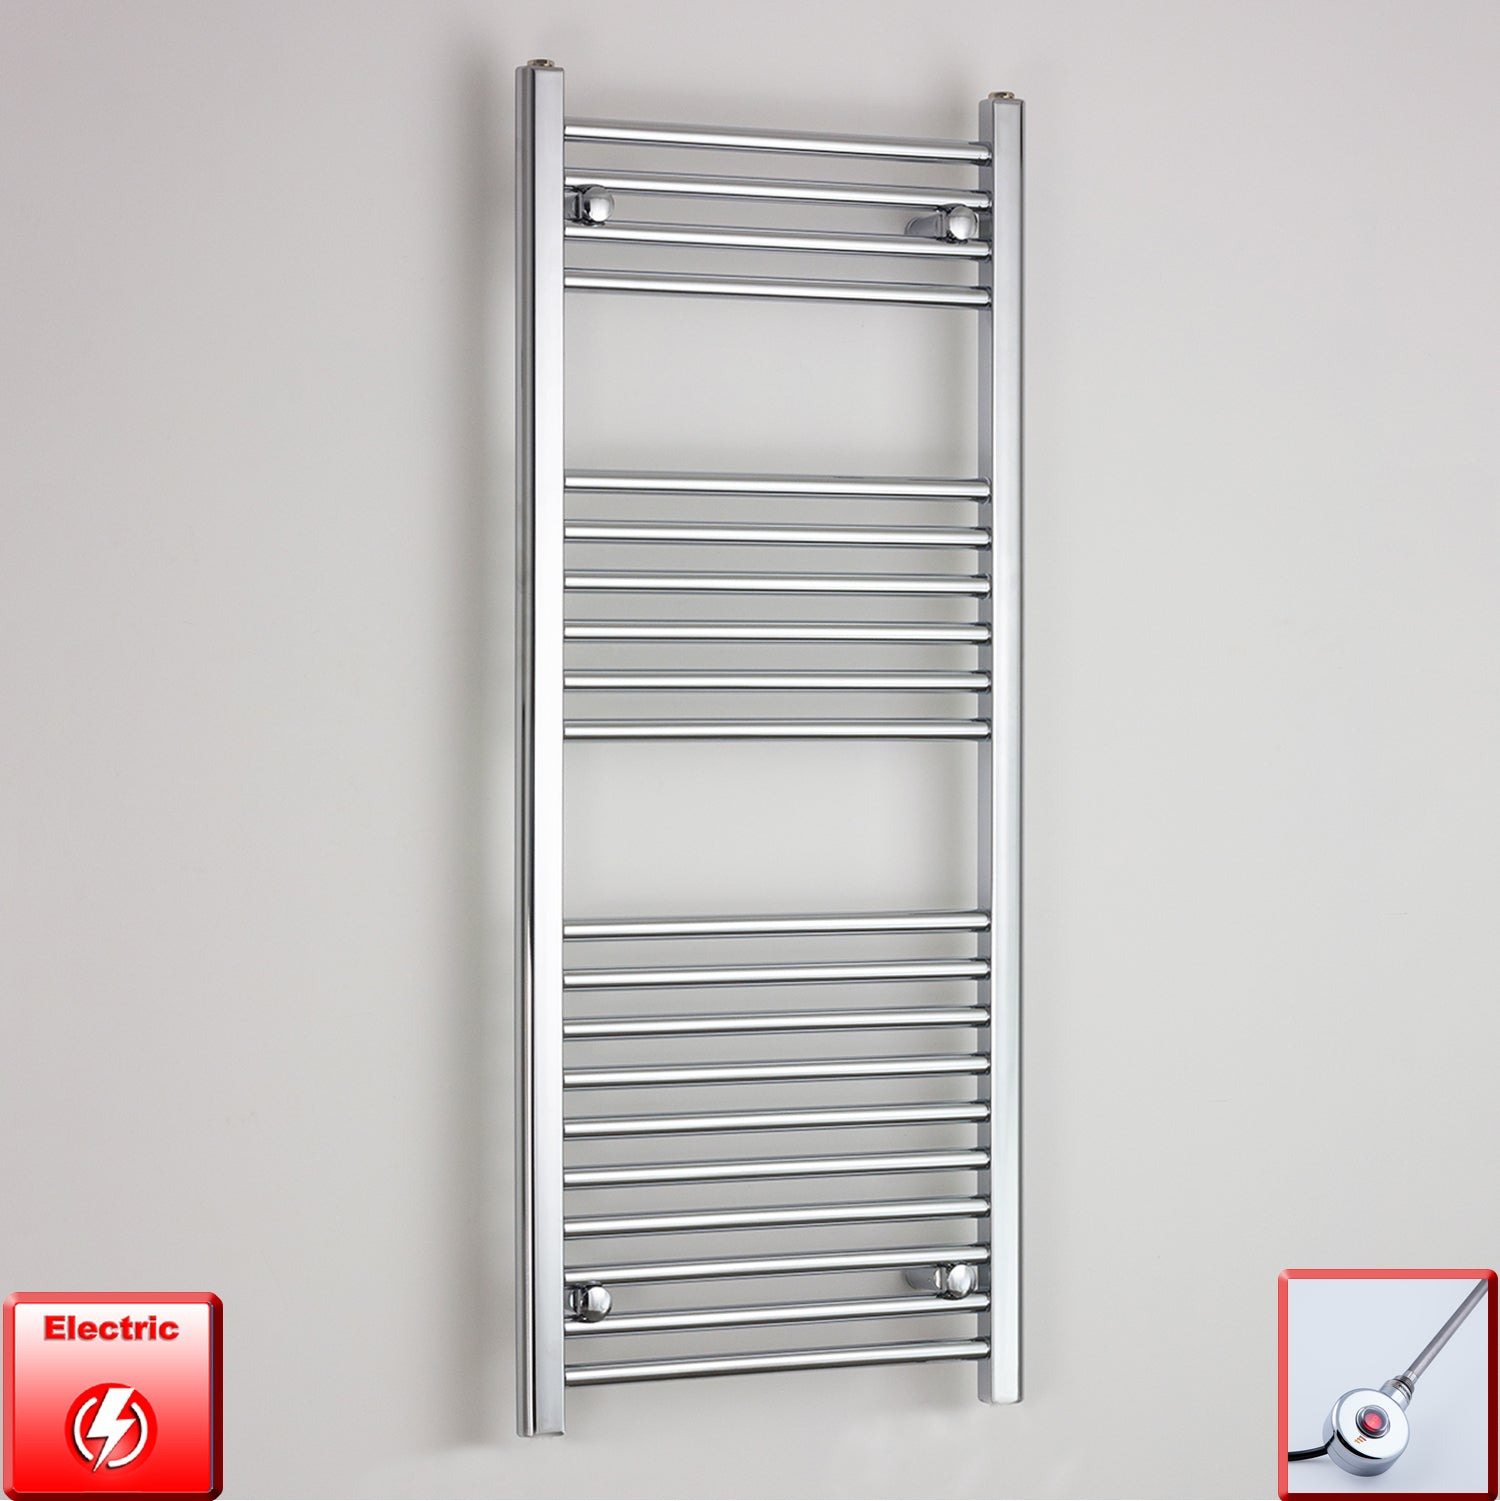 600mm Wide 1200mm High Pre-Filled Chrome Electric Towel Rail Radiator With Thermostatic DIGI Element